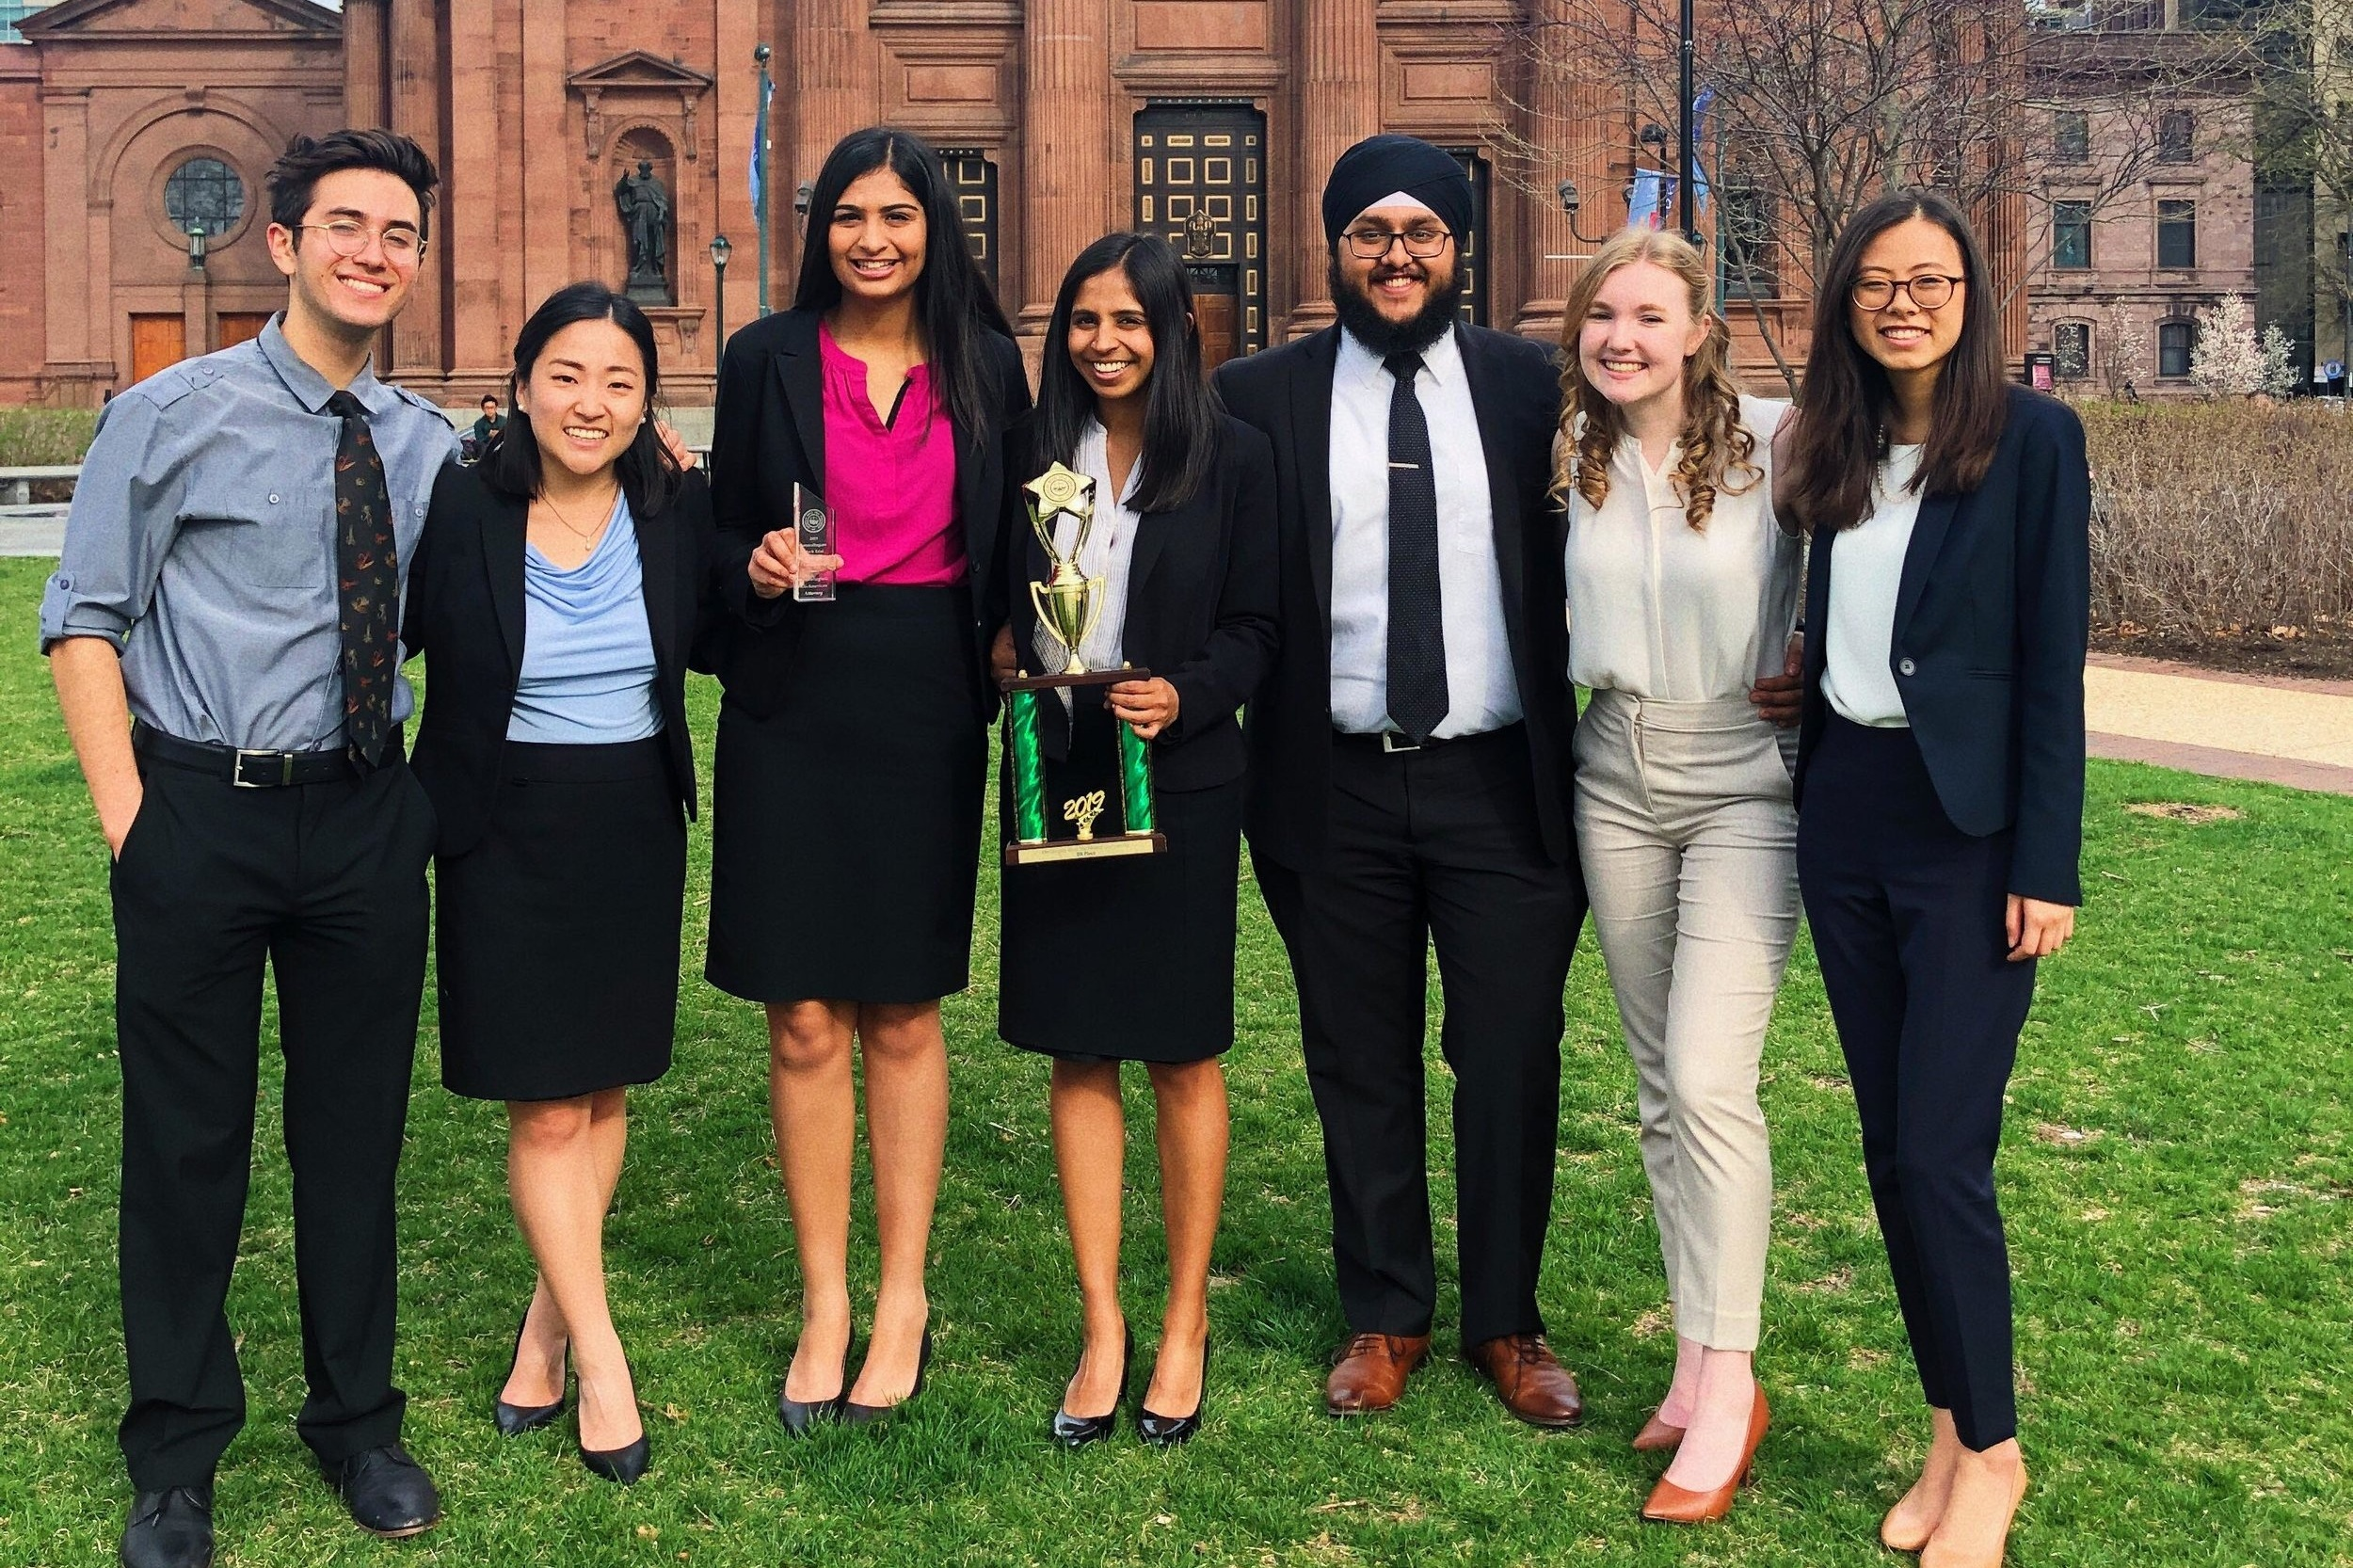 National Championship (4/5-4/7) - It was an amazing weekend in Philly for Cal Mock Trial. Berkeley A won 9th place in the Guliuzza Division of the 2019 National Championship Tournament, finishing the tournament with 10 wins and the Spirit of AMTA Honorable Mention. Special shoutout to our newest All-American Attorney Fatima Hasanain, who finished her senior season with 33/40 ranks on the Plaintiff!It was a record breaking season and we couldn't be prouder of our program. Watch out for Cal Mock Trial next year.